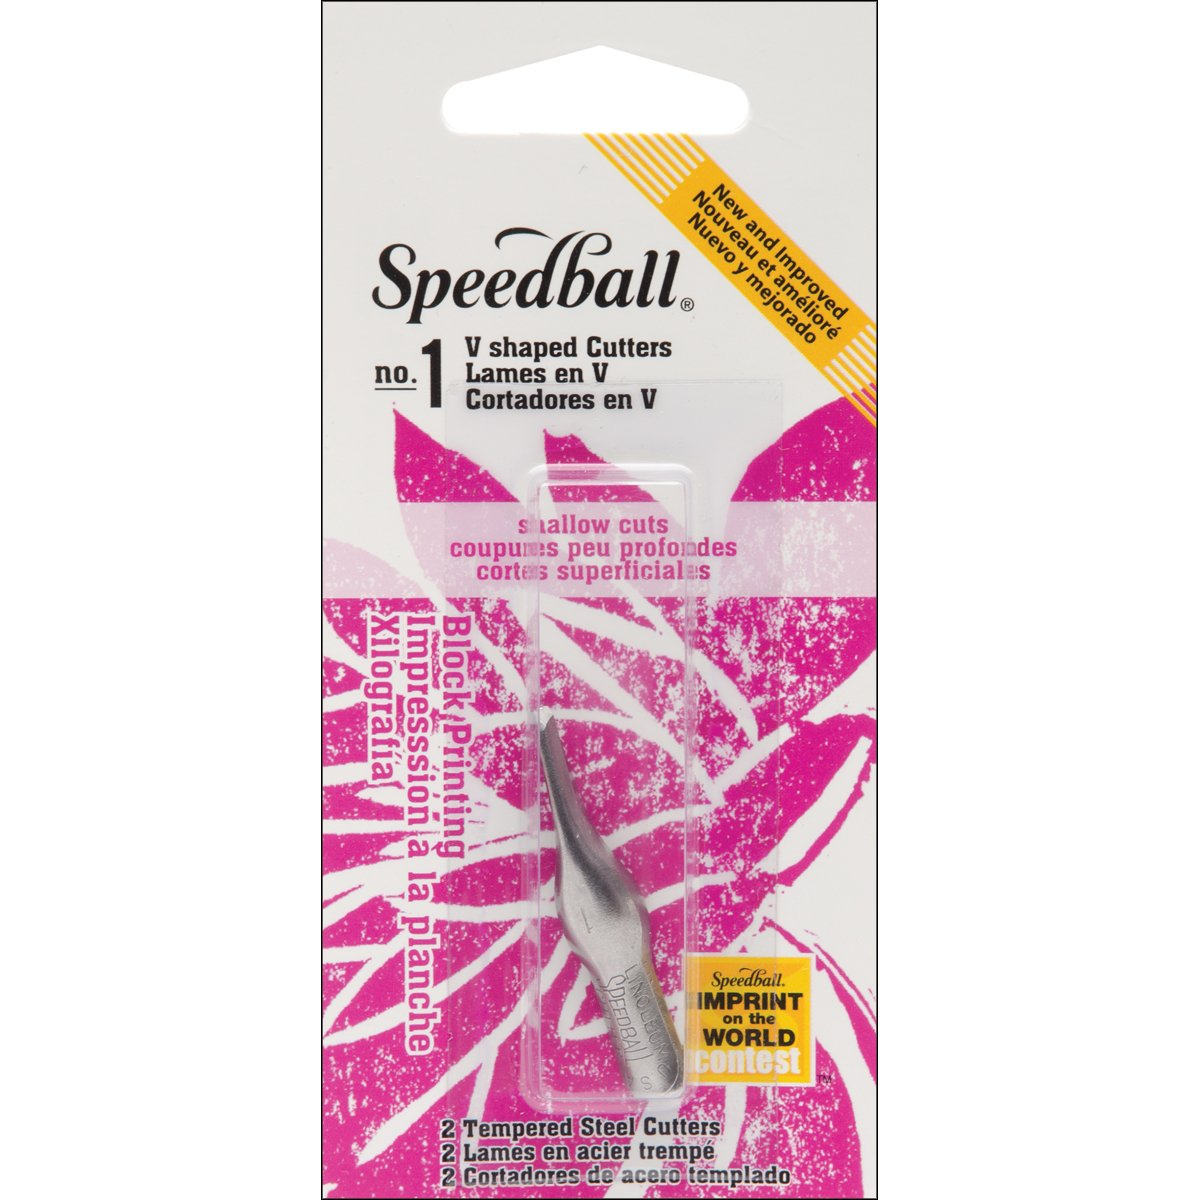 Speedball Lino Cutter Blades 2/Pkg-No. 1 Small V Notions - In Network 27128166